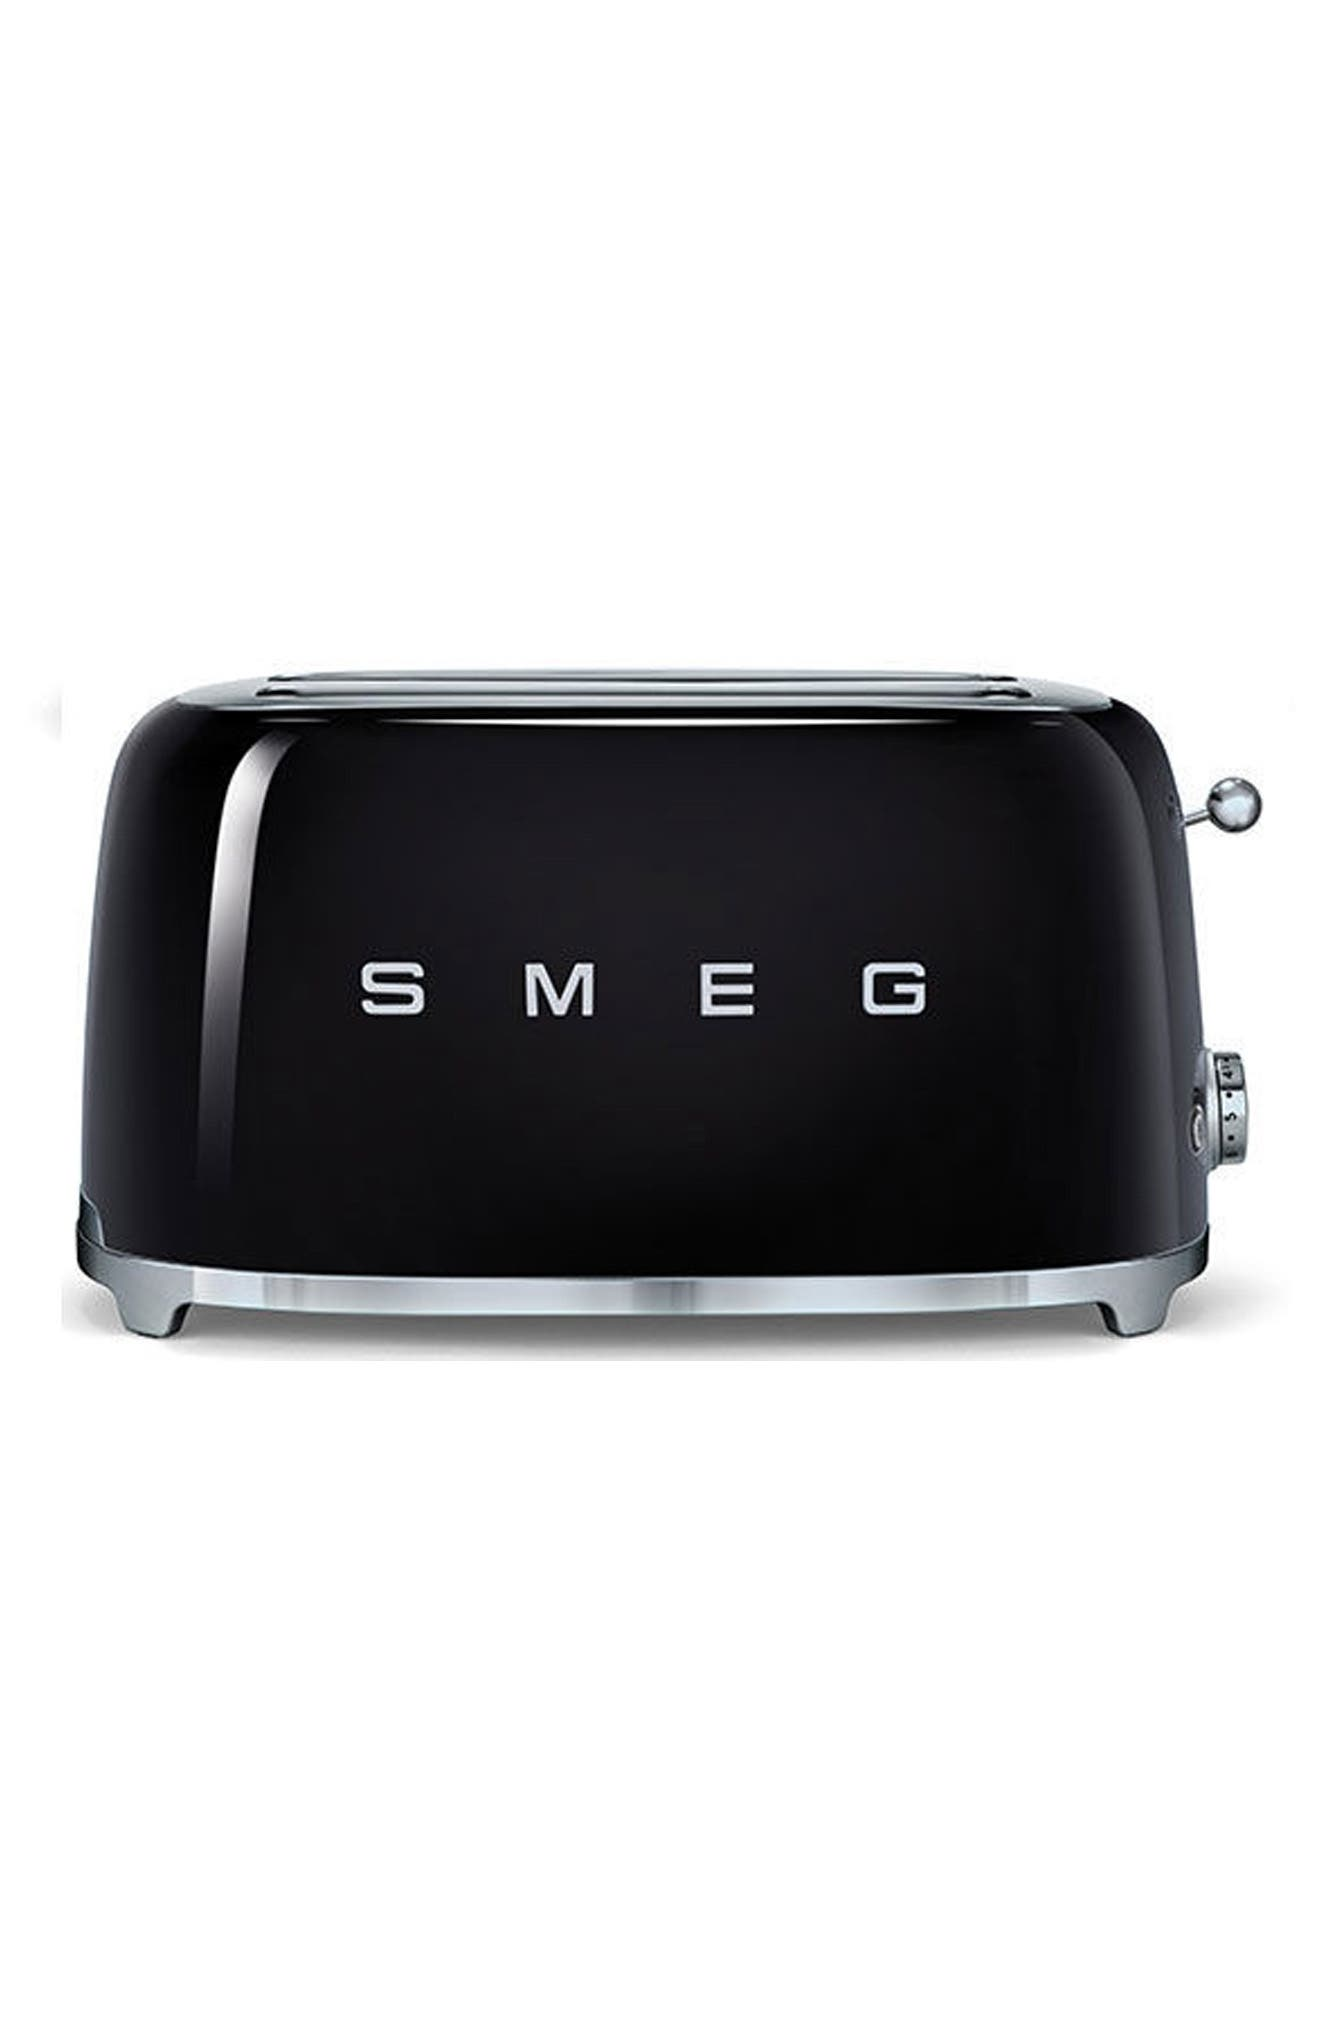 50s Retro Style Four-Slice Toaster,                             Main thumbnail 1, color,                             BLACK